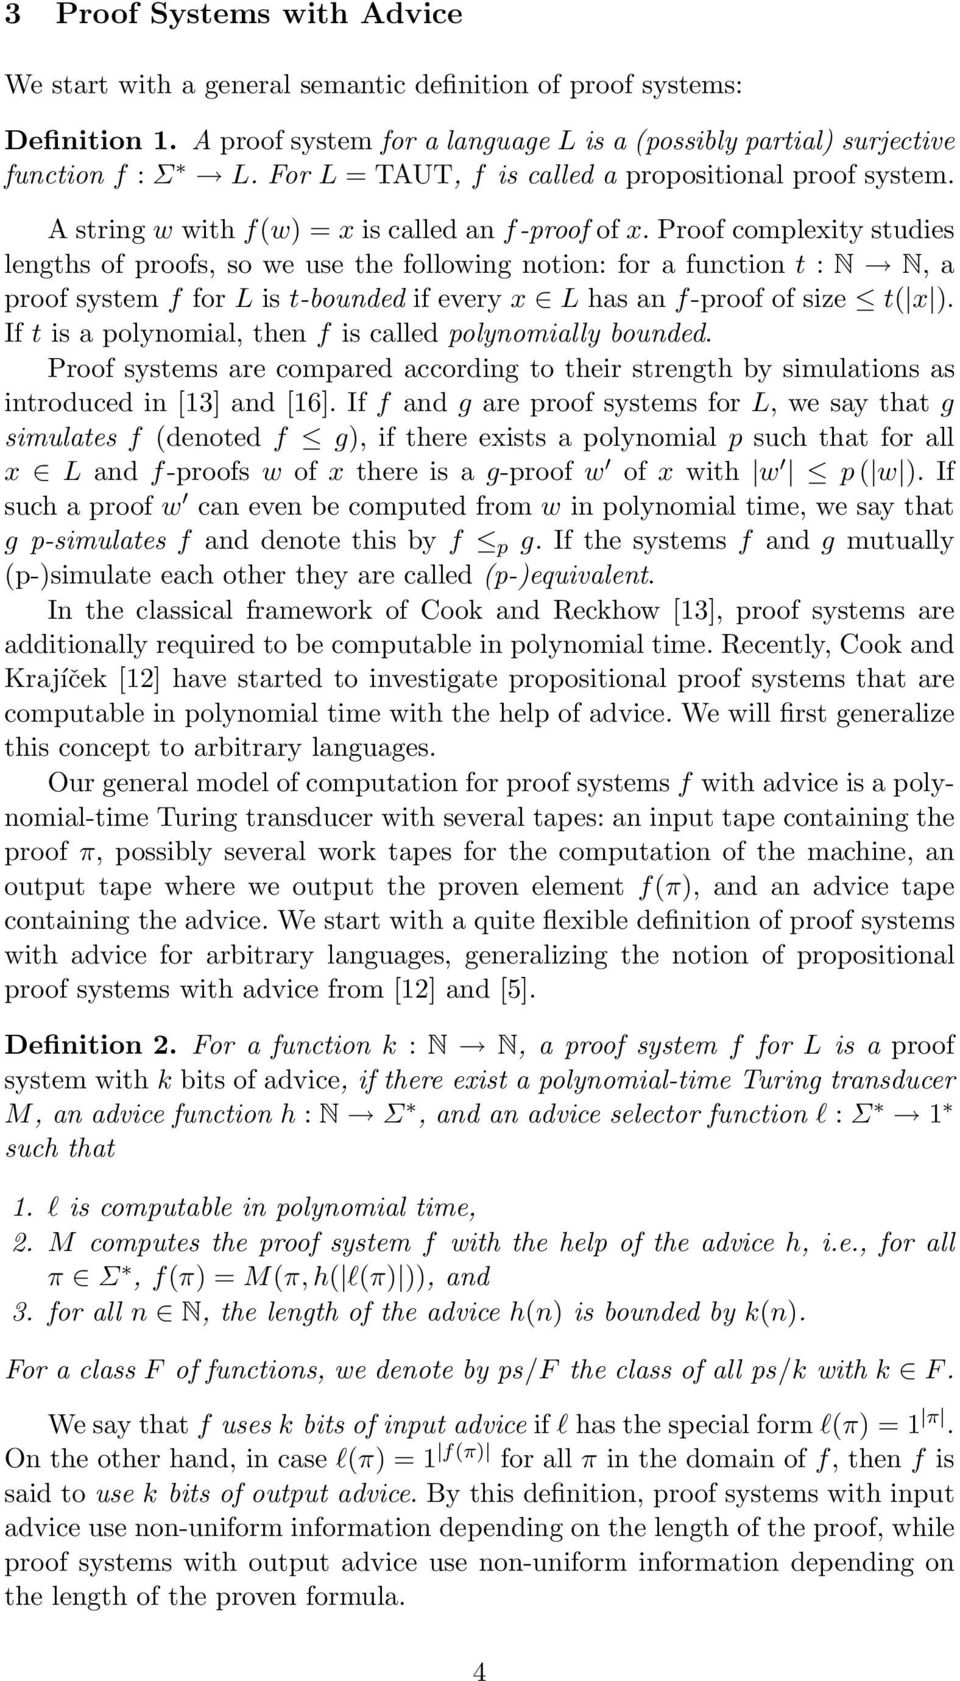 Proof complexity studies lengths of proofs, so we use the following notion: for a function t : N N, a proof system f for L is t-bounded if every x L has an f-proof of size t( x ).